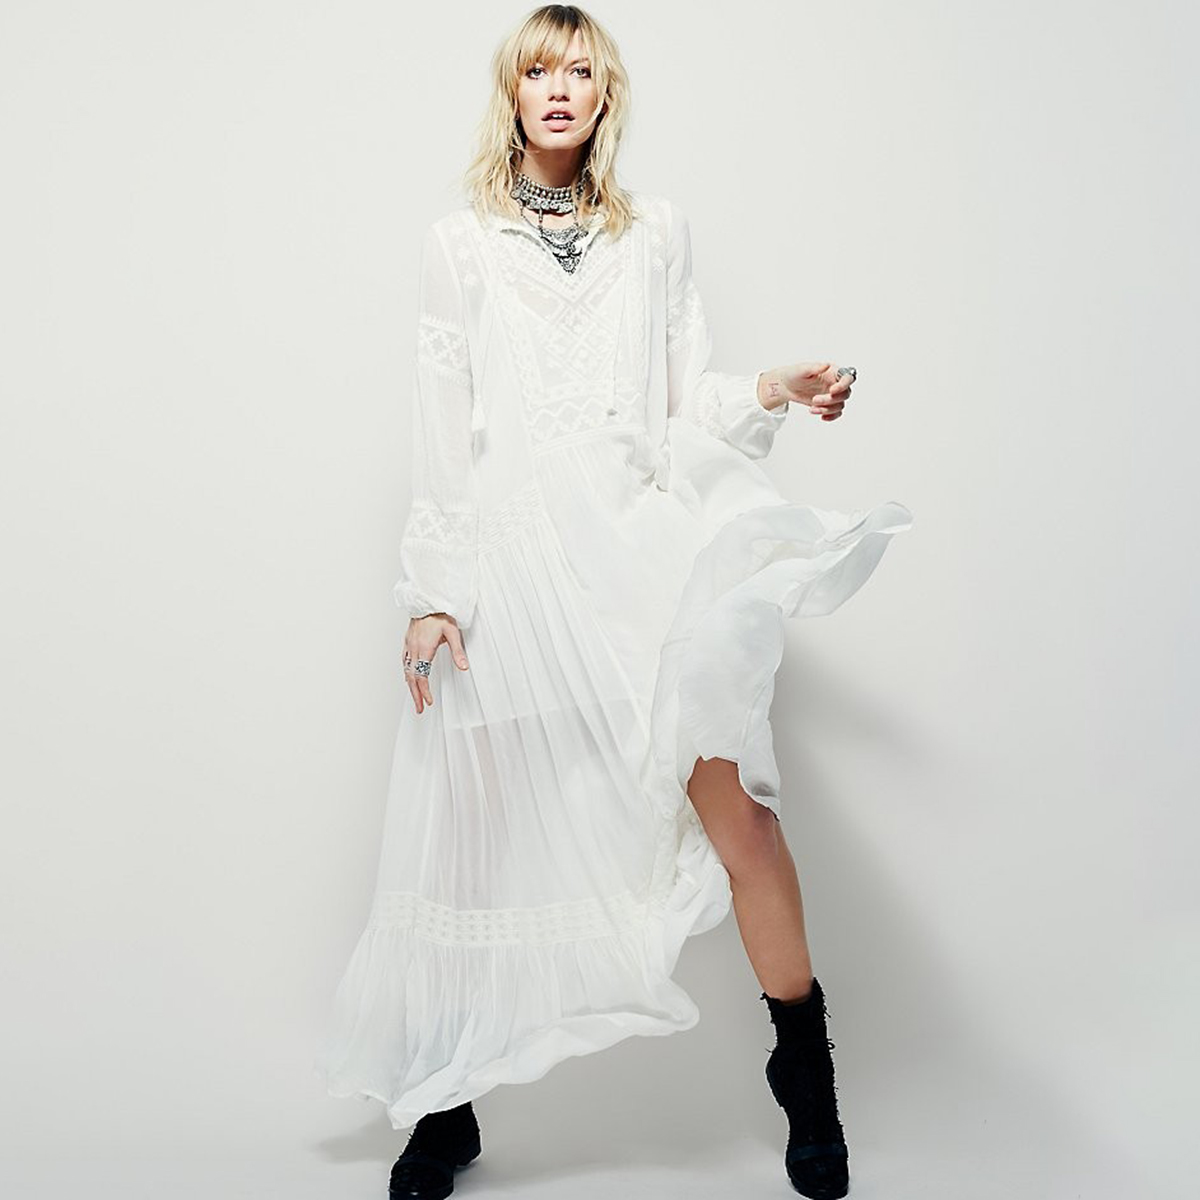 Longues Casual Dames Broderie Ethnique 2018 Hippie Manches Rouge Col Robe Sexy V Maxi Robes Longue Élégante Blanc blanc Boho Plage Femmes pq8wcYwOg